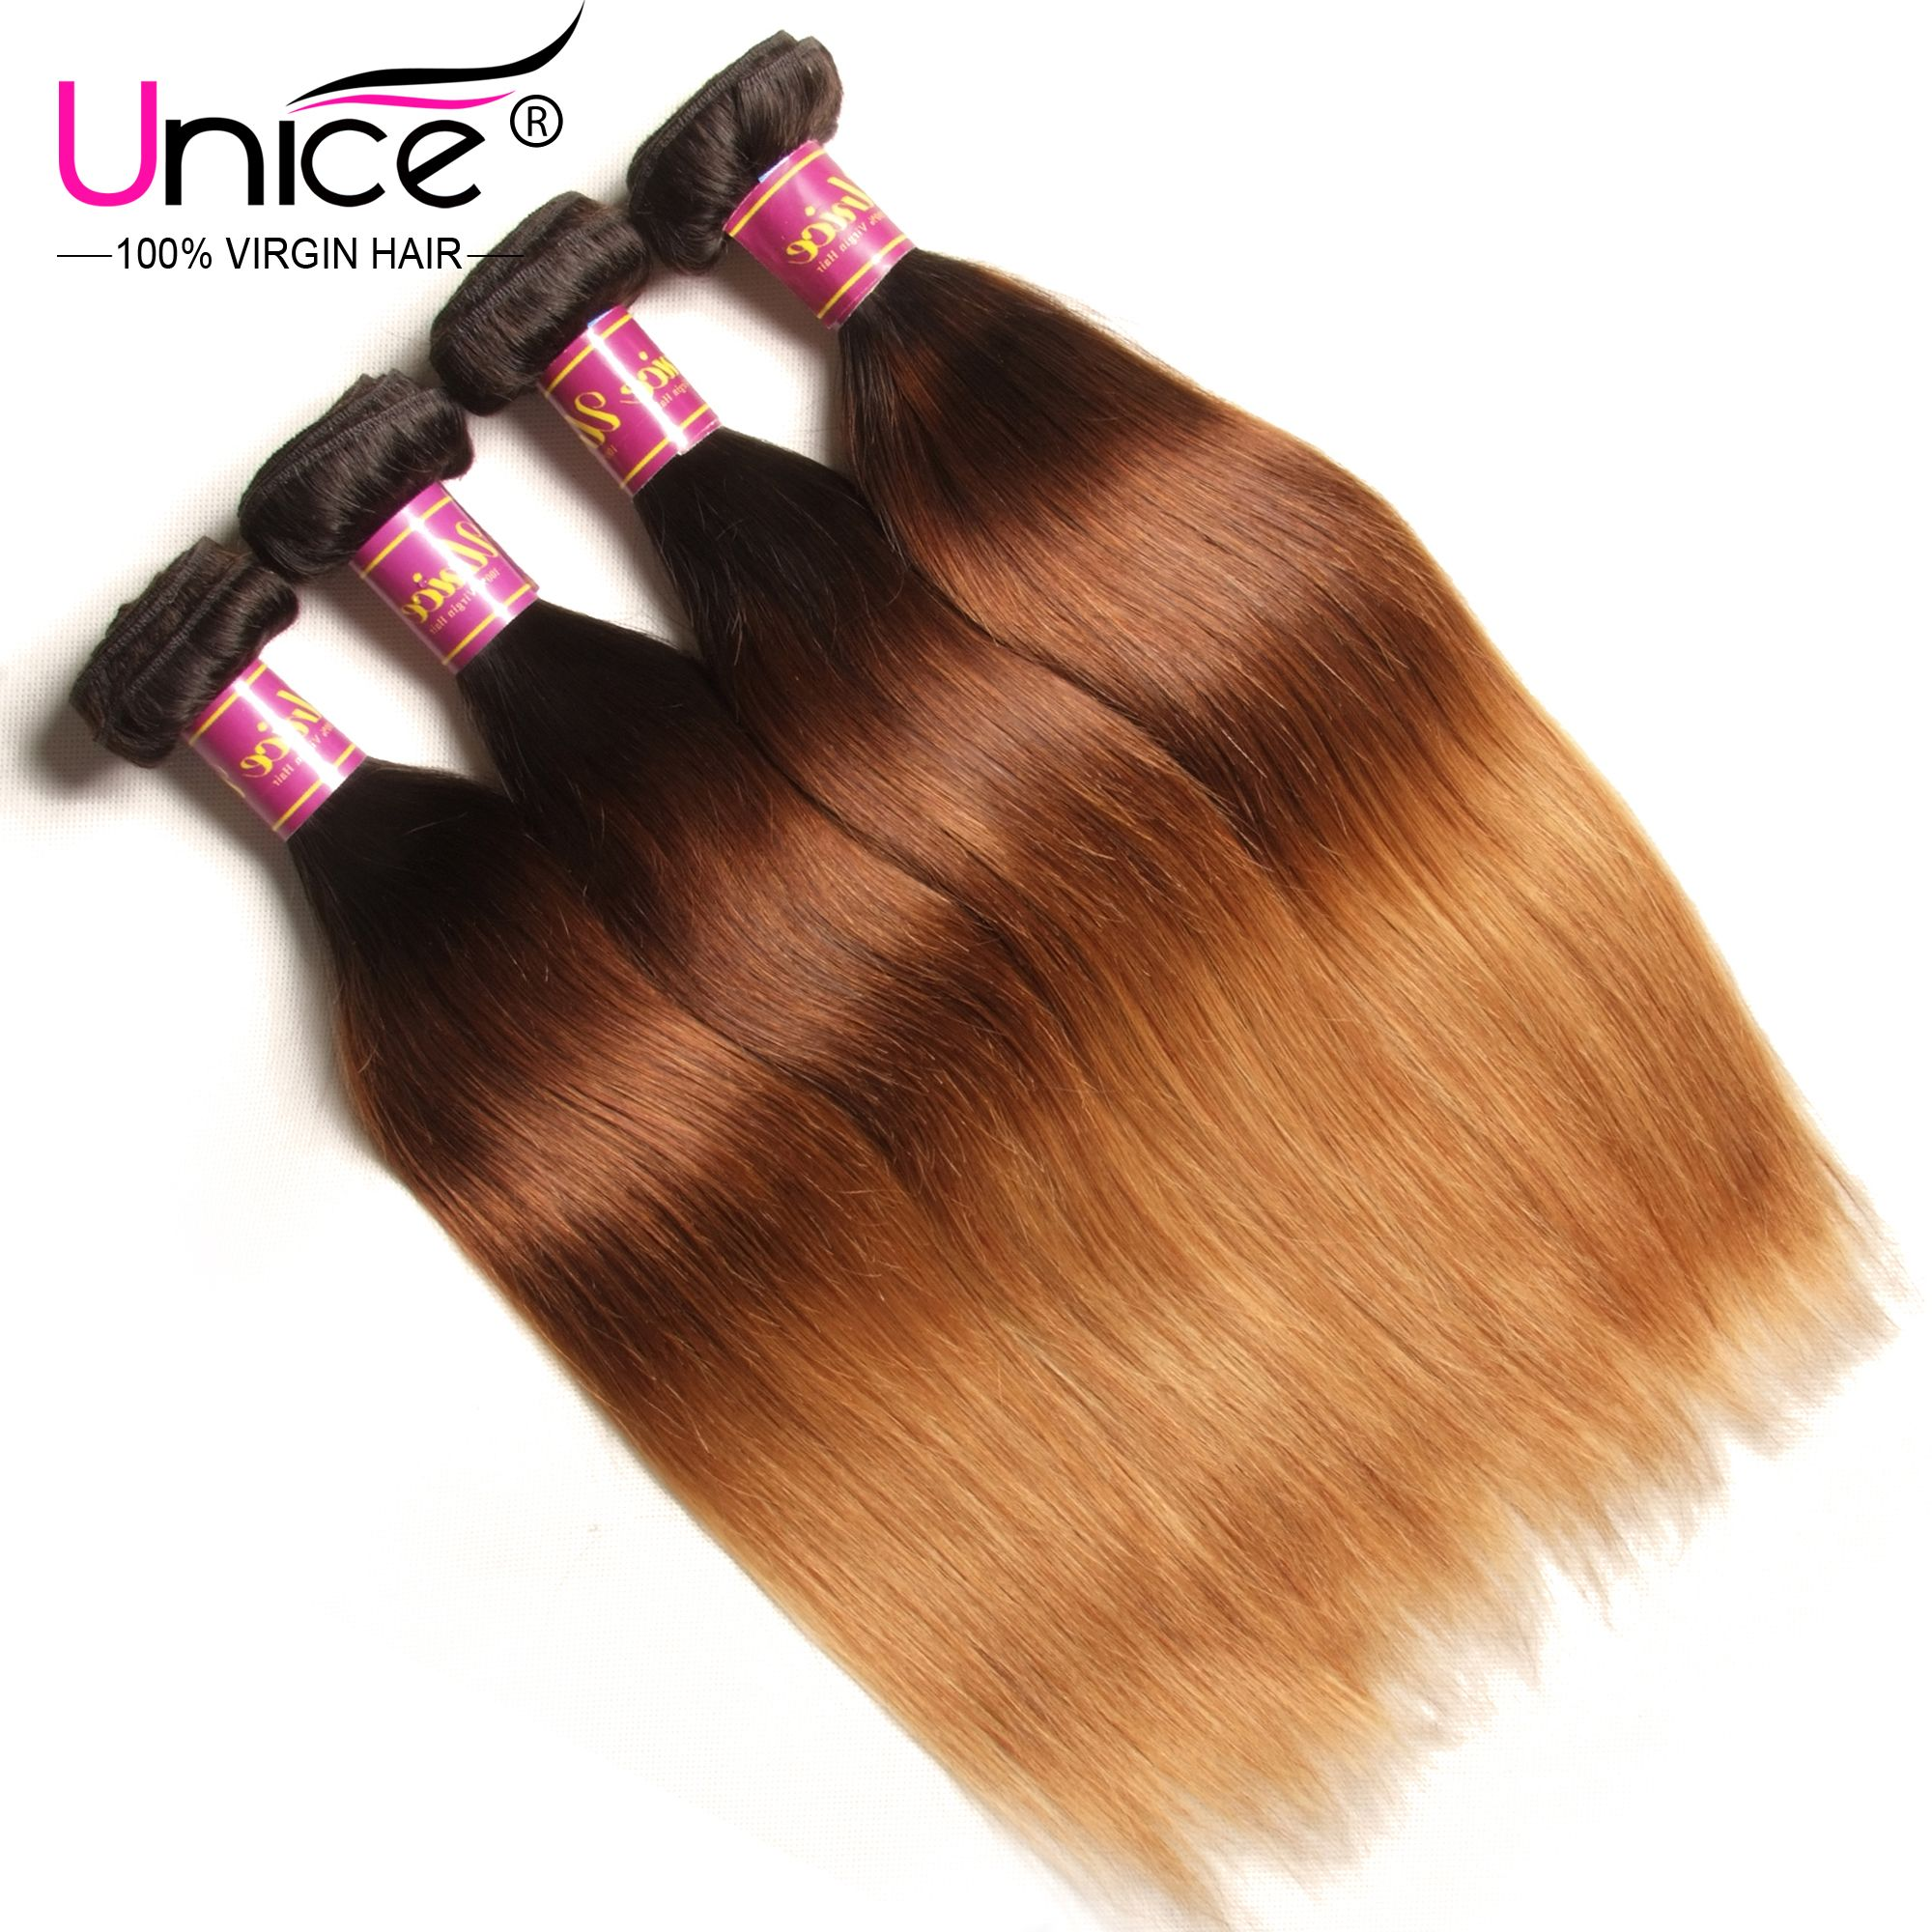 Unice Brazilian Ombre Straight Hair Extension S 16 26 Inch 4